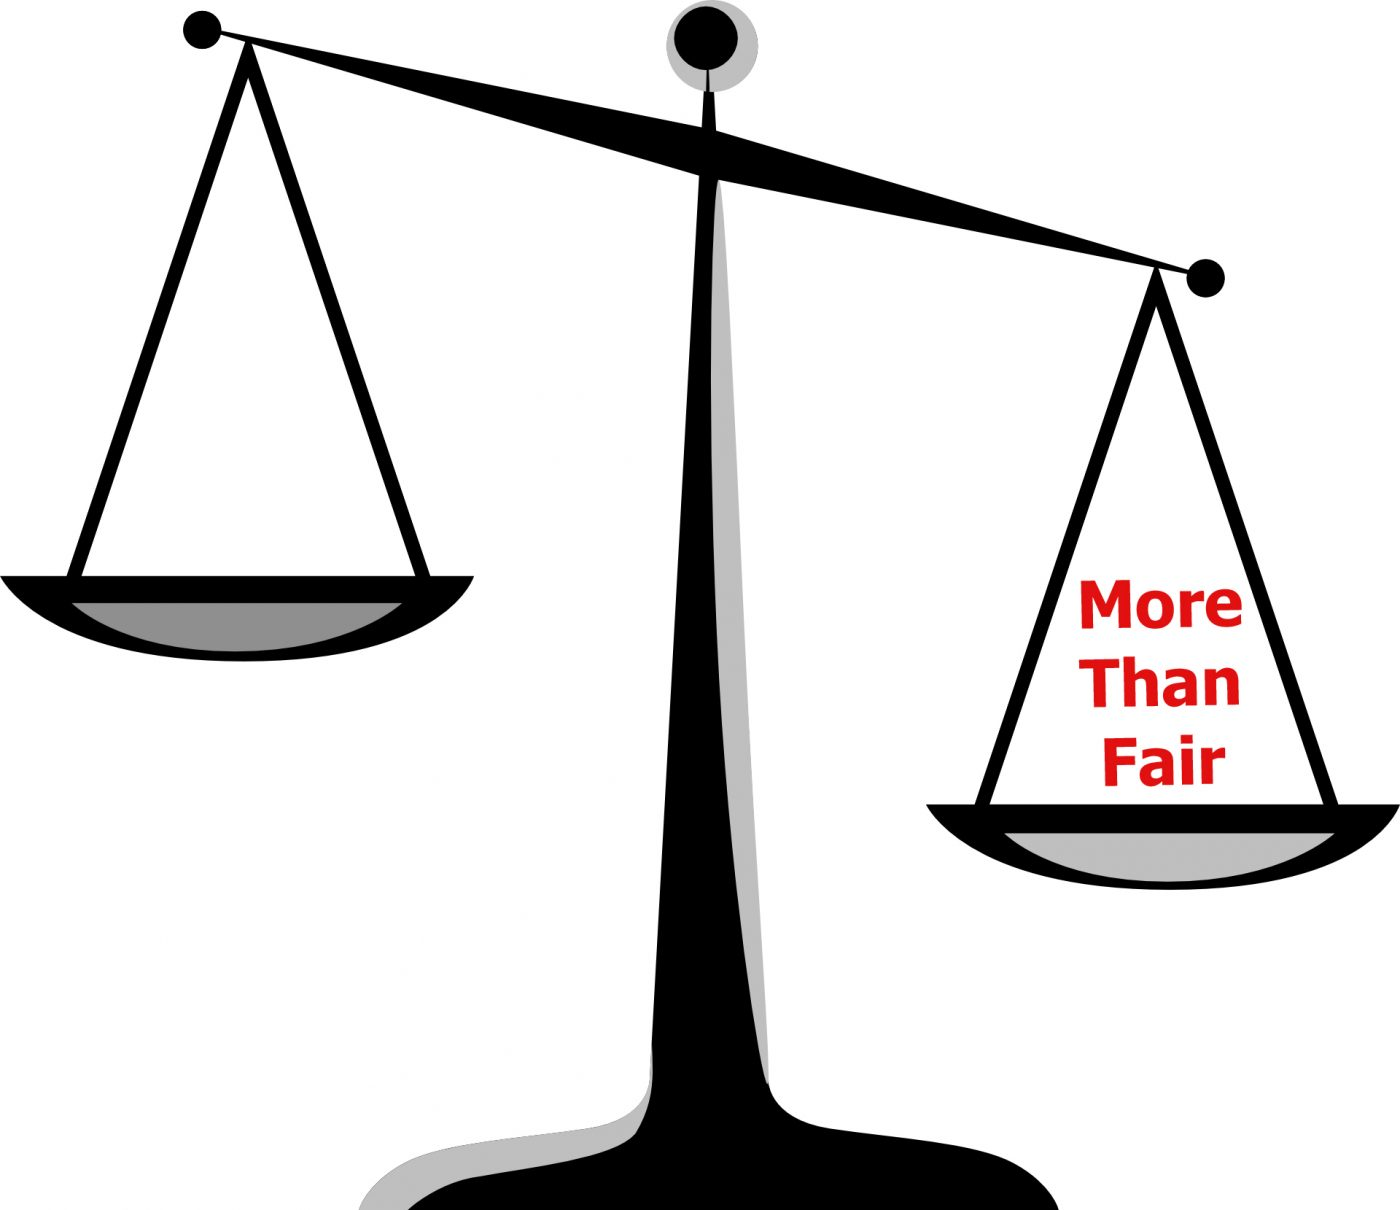 More than Fair